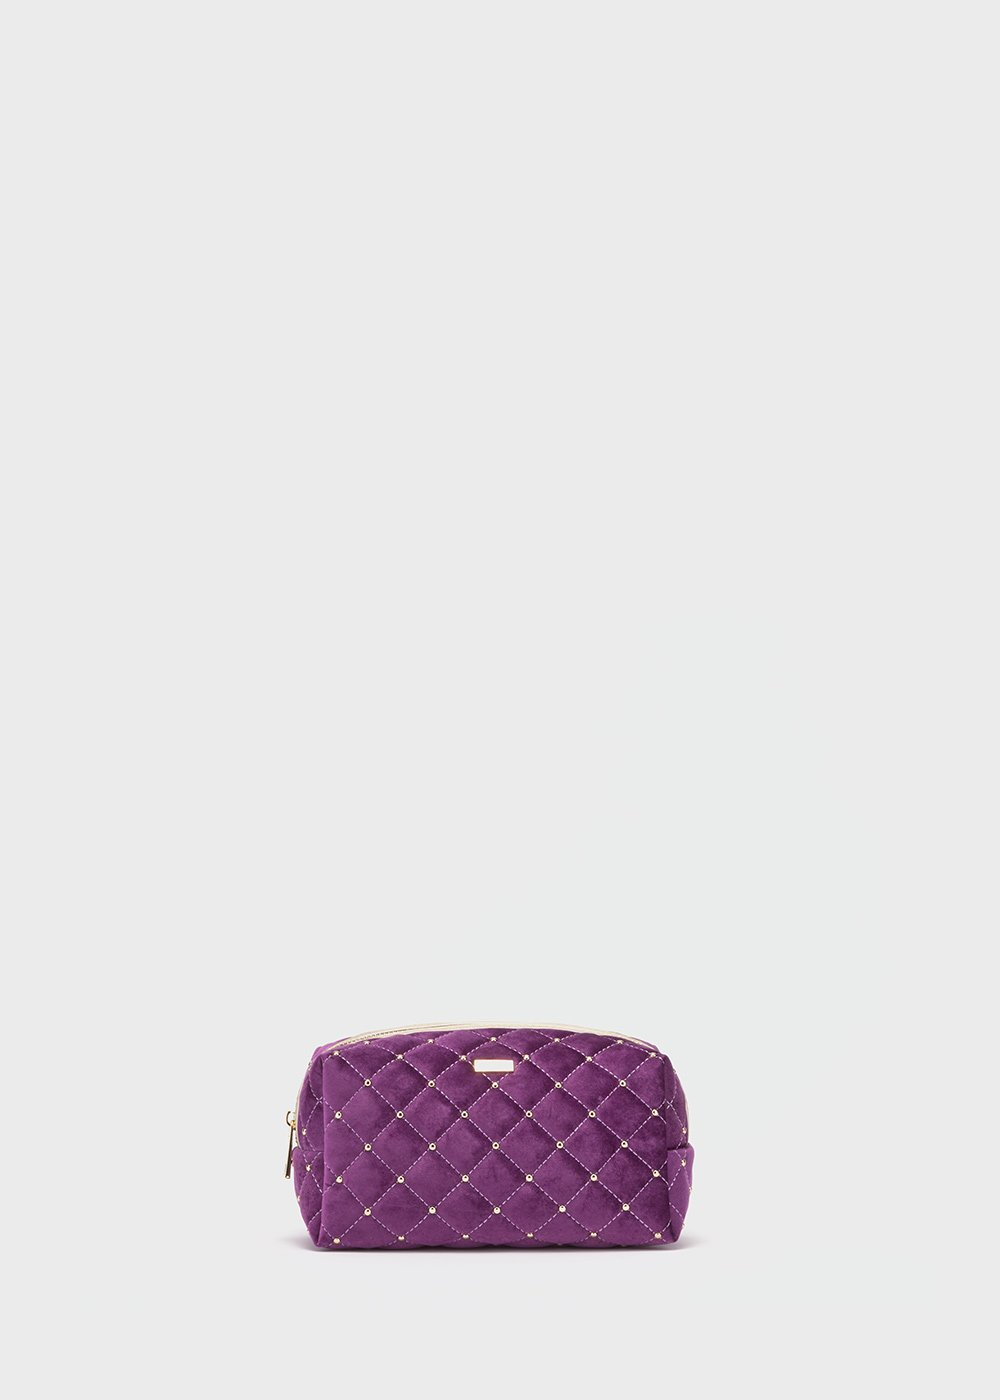 Astral velvet Bobys washbag